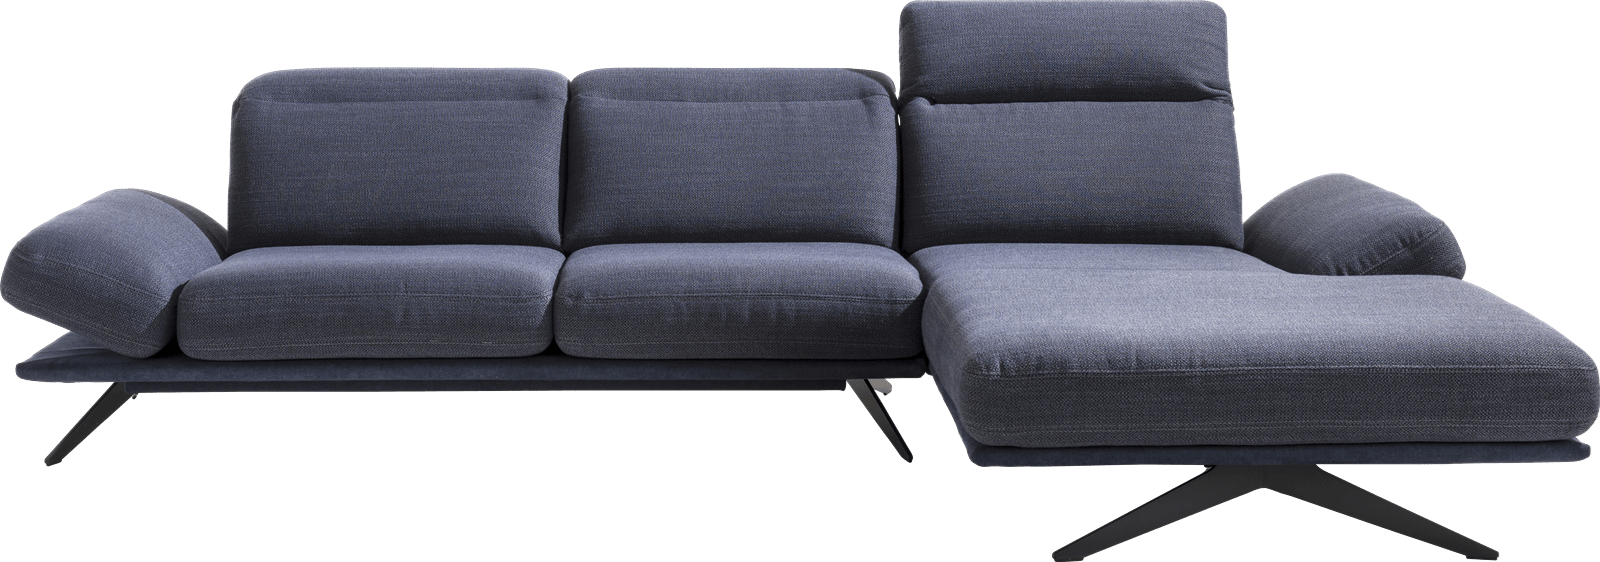 XOOON - Mansbo - Sofas - 2,5 seater arm left - Longchair right